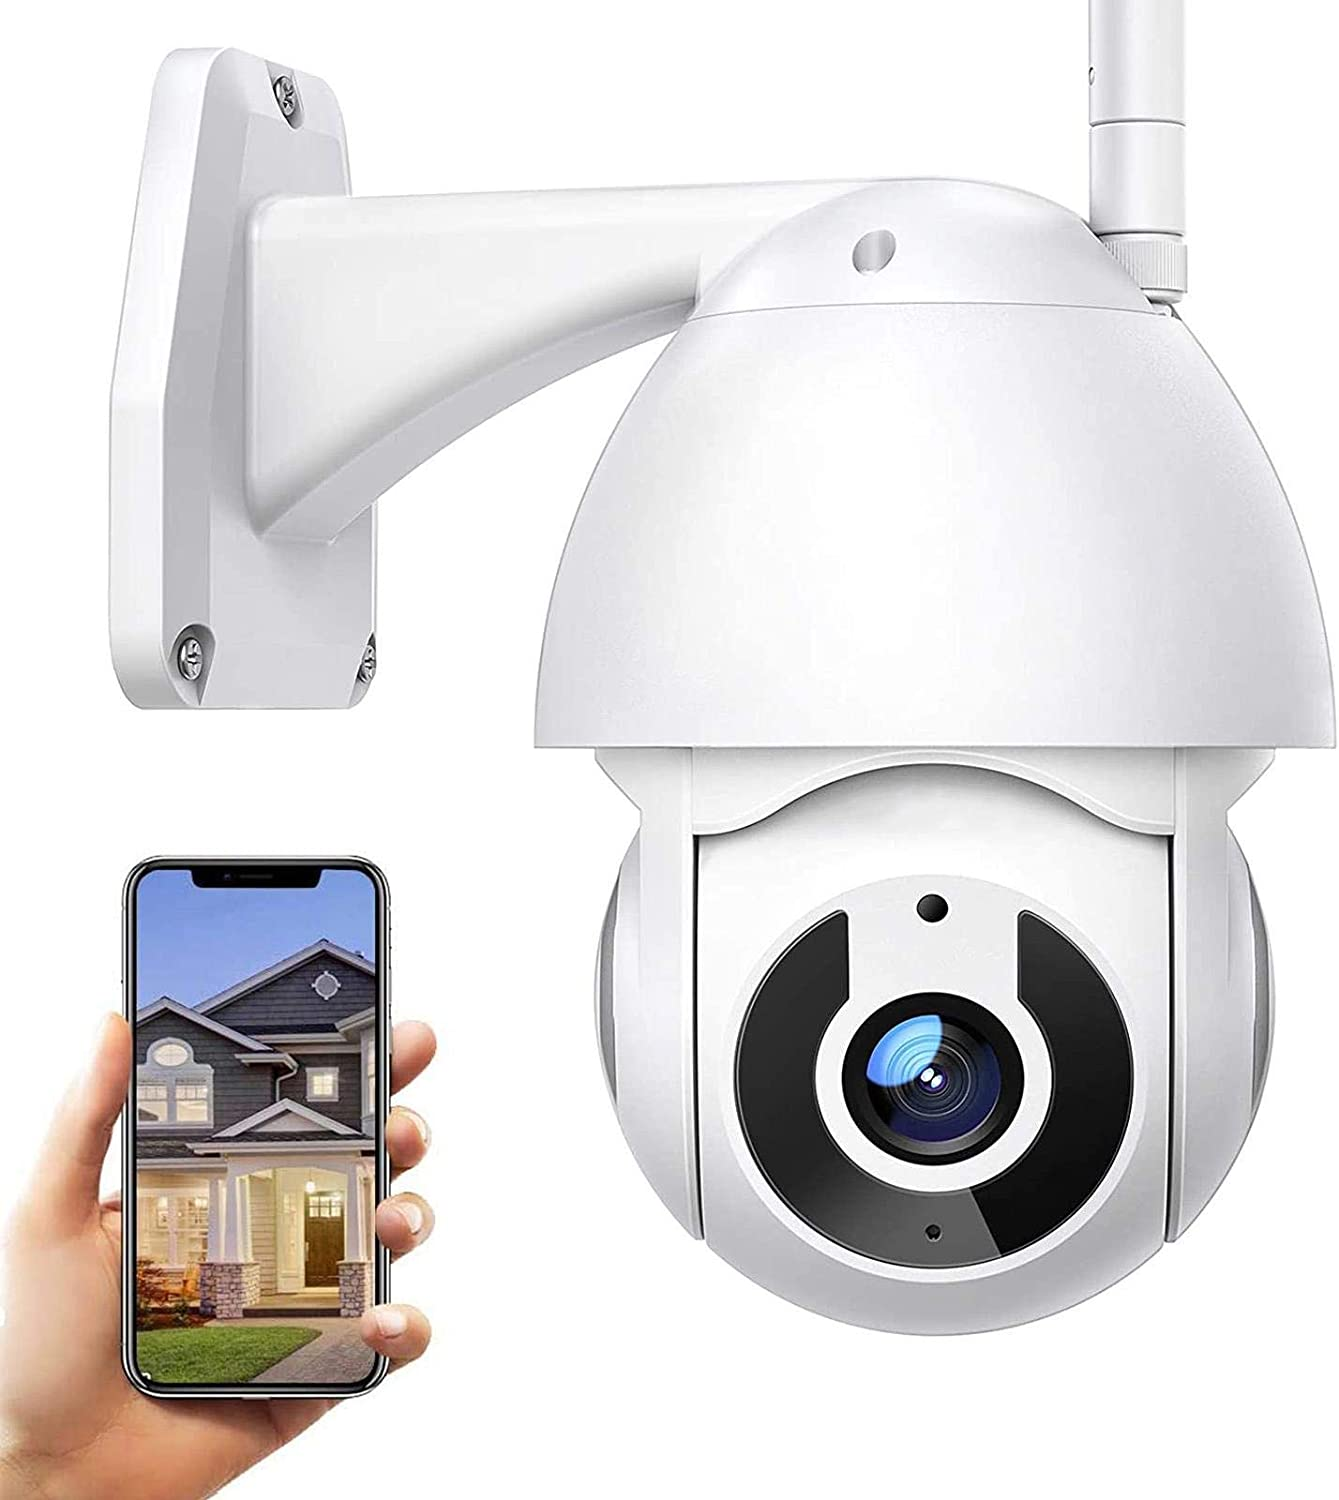 Outlet SALE Large discharge sale Outdoor Surveillance Camera 1080P 360°pa Security WiFi HD